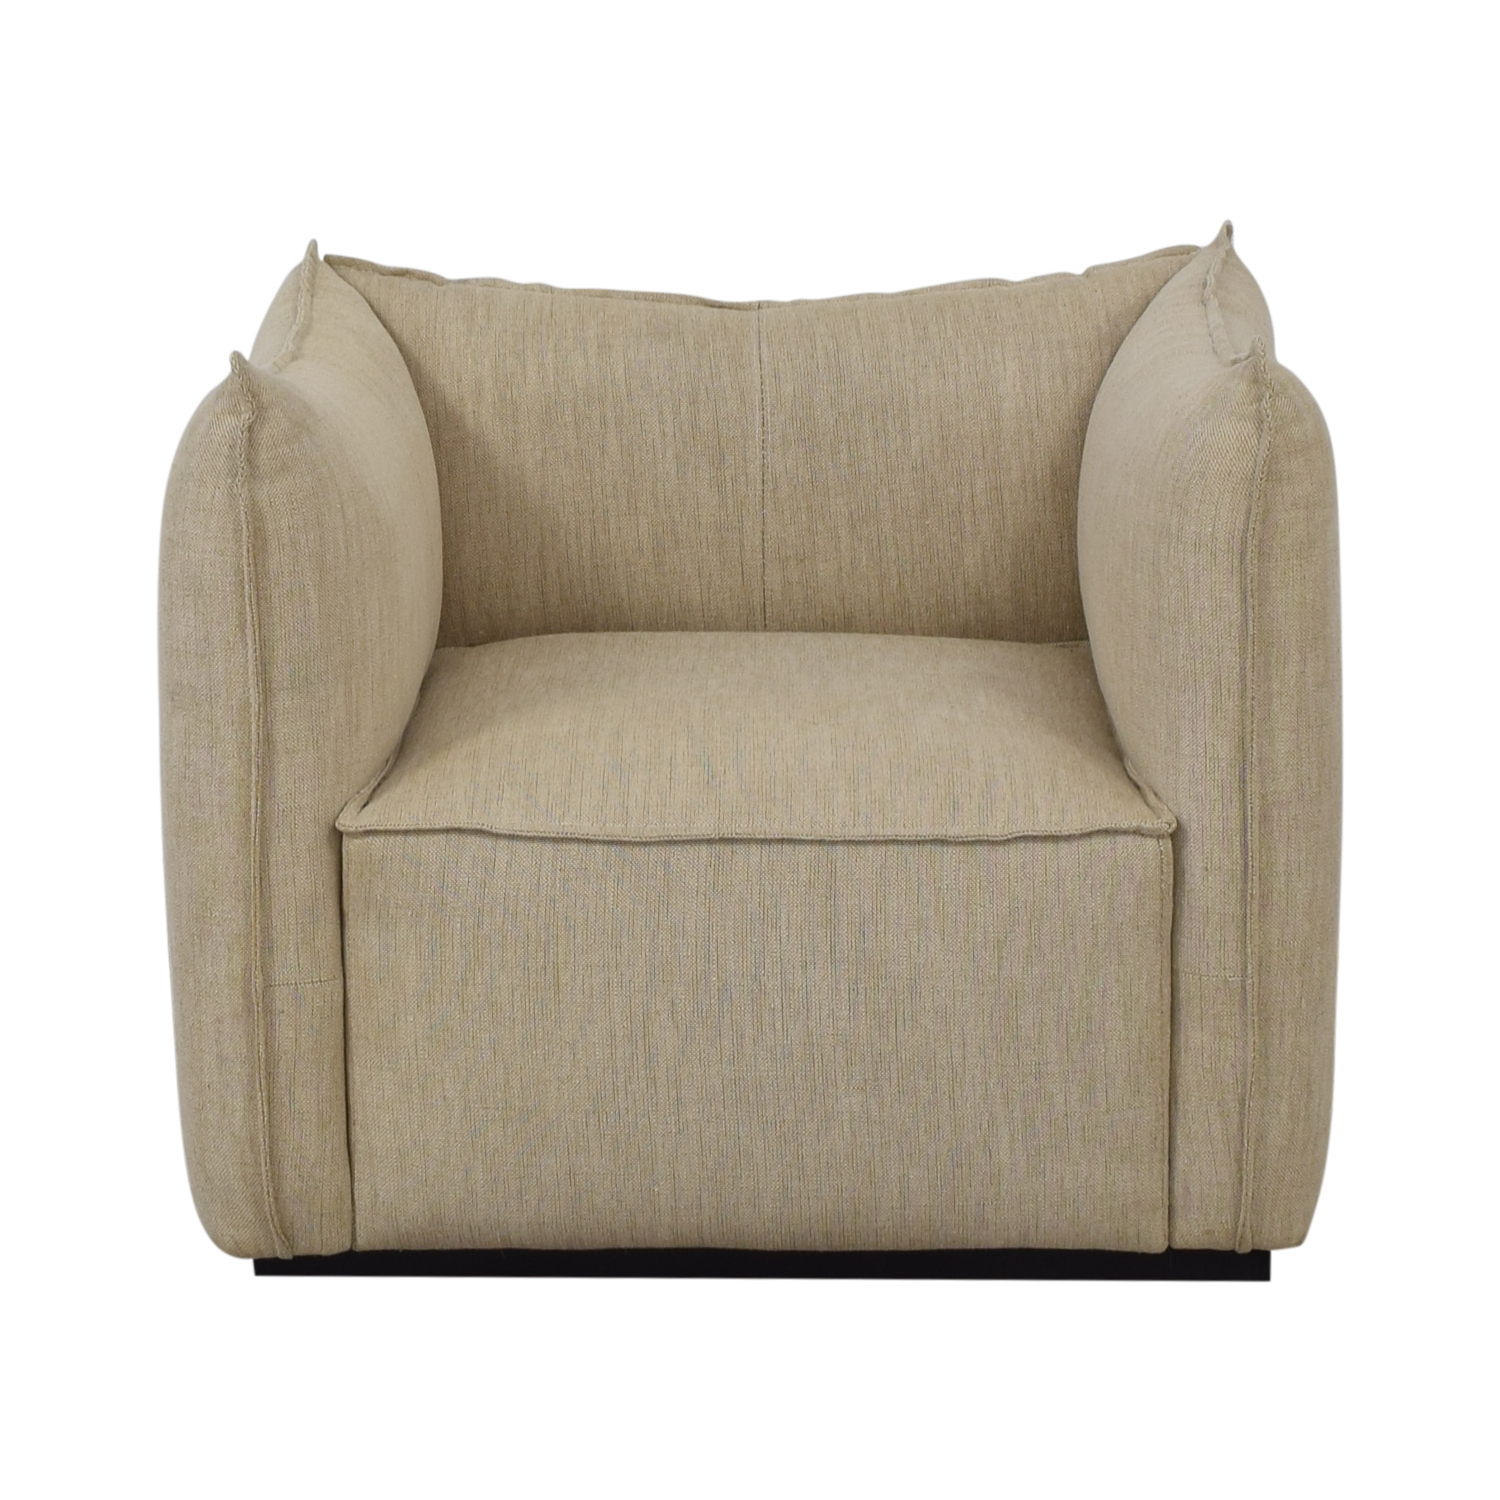 buy Restoration Hardware Peyton Arm Chair Restoration Hardware Accent Chairs